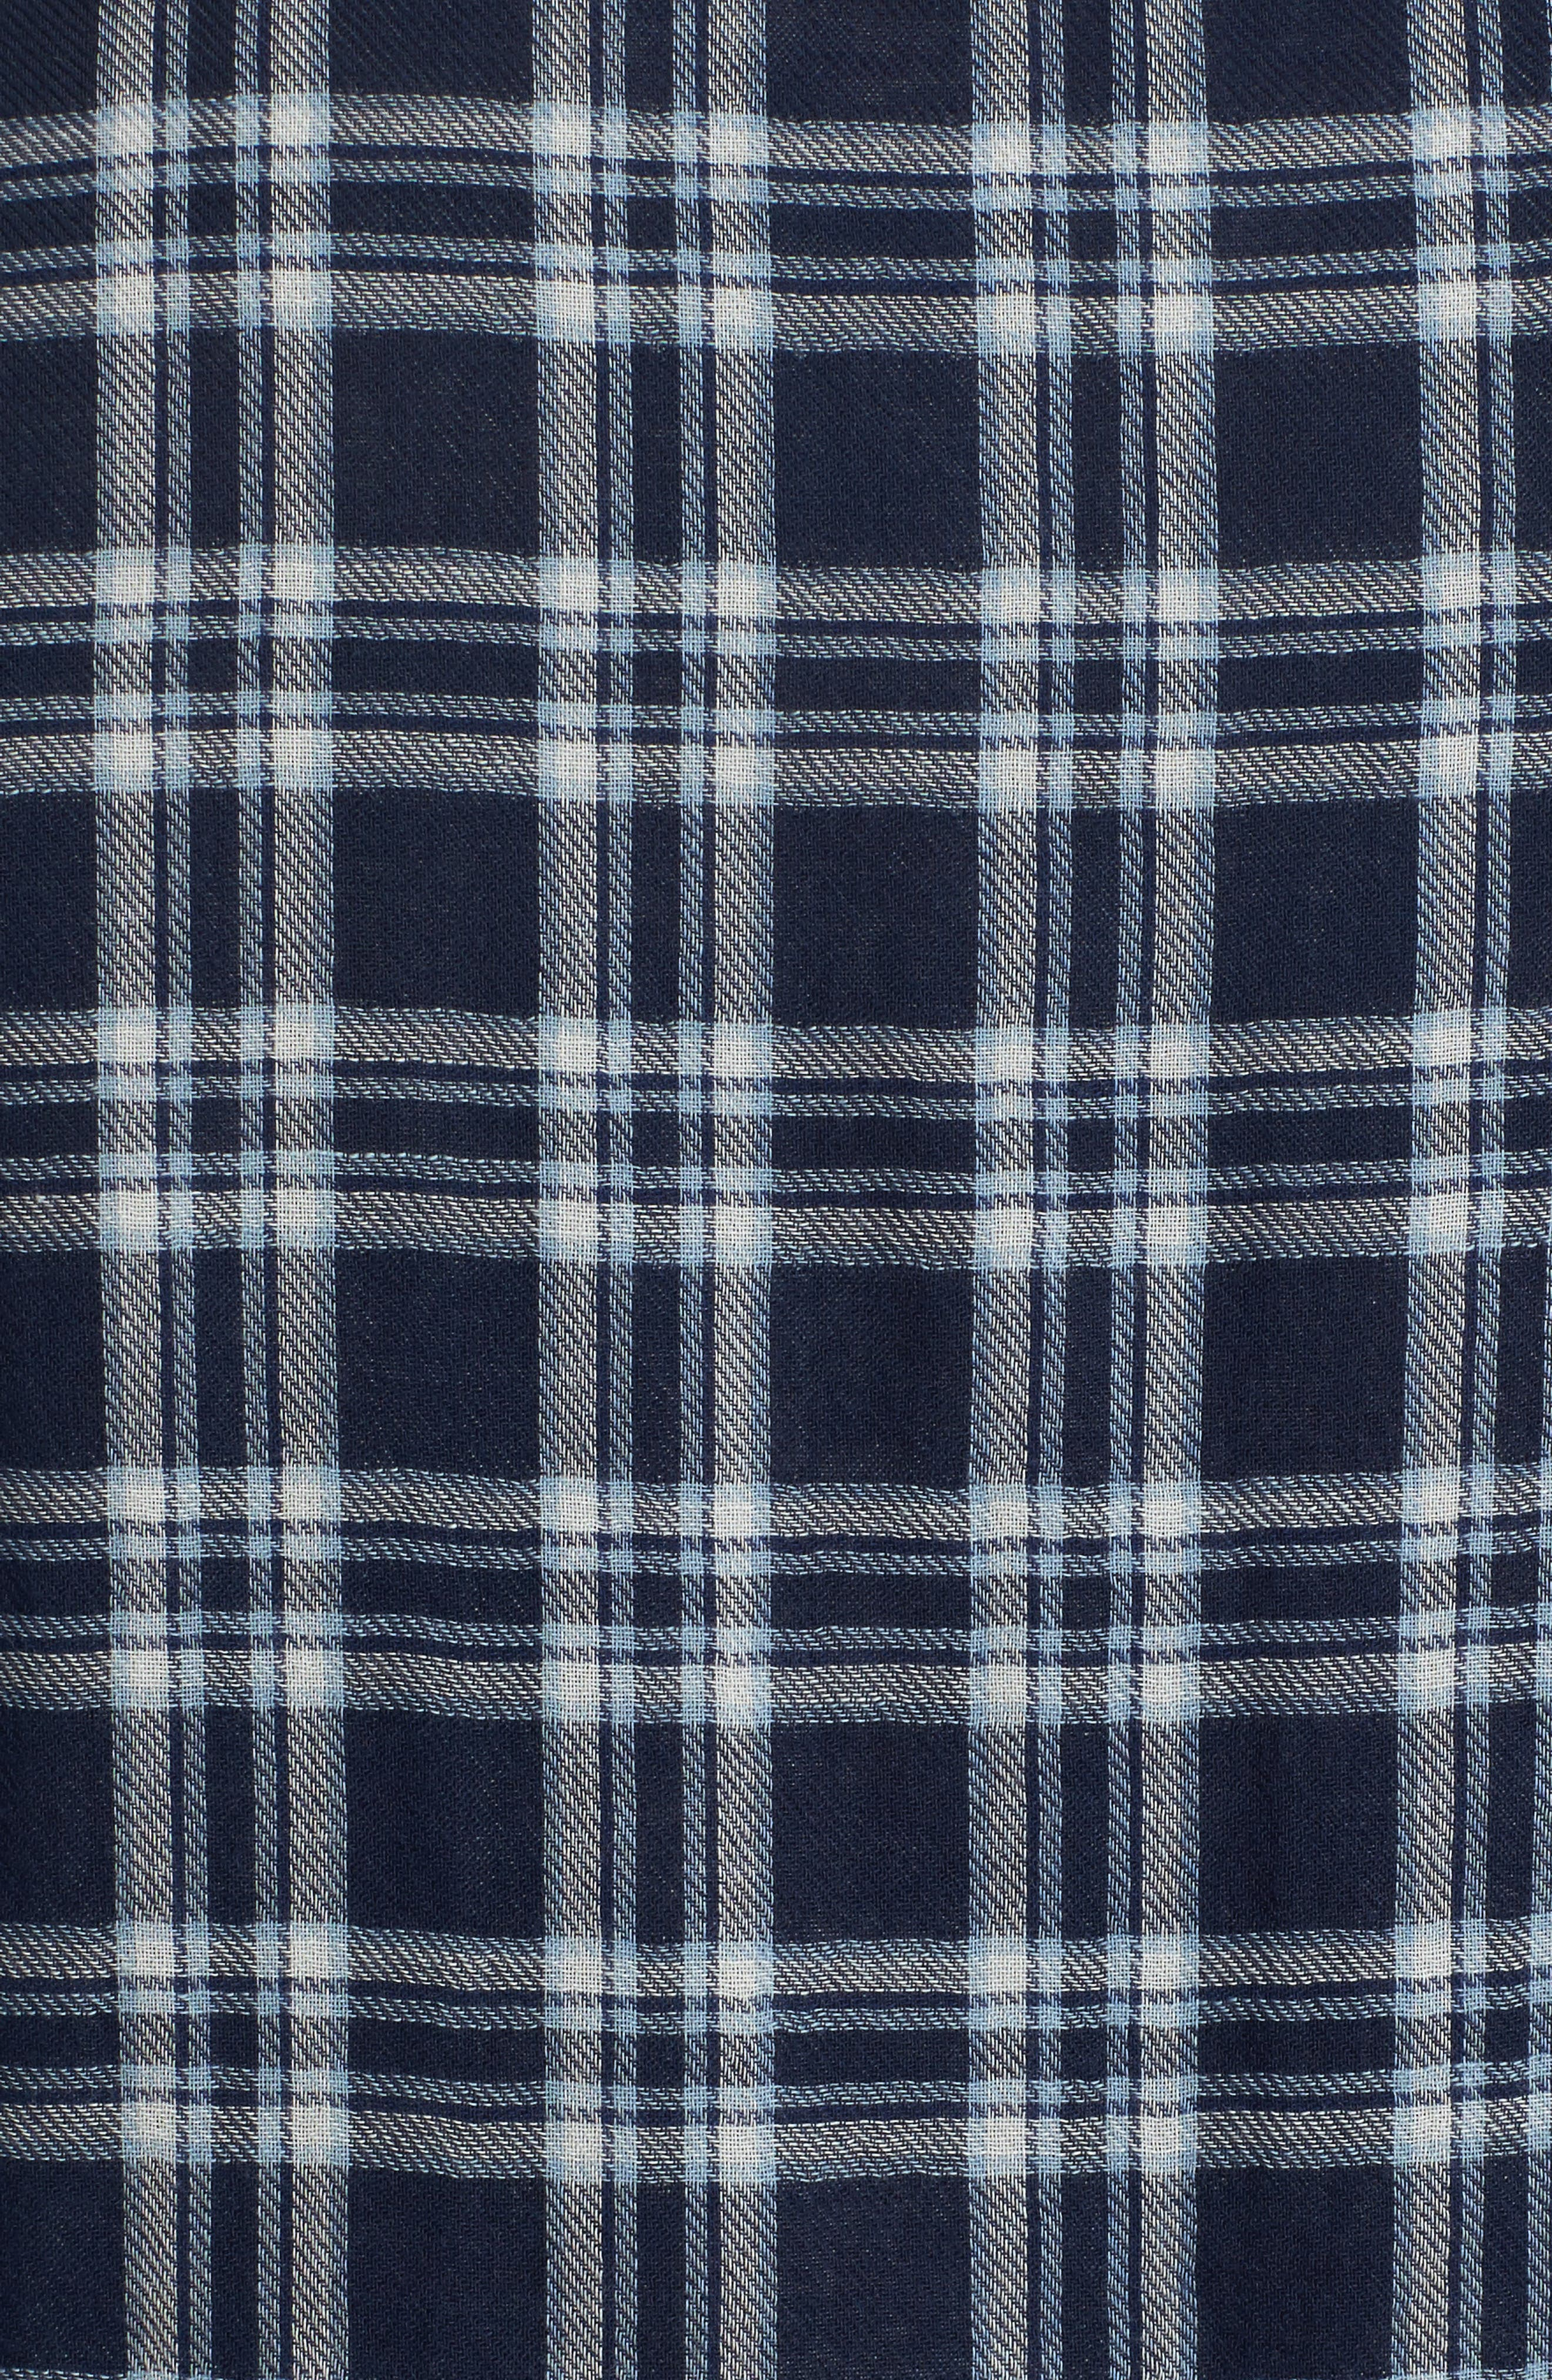 Trim Fit Workwear Duofold Check Sport Shirt,                             Alternate thumbnail 5, color,                             Navy White Chambray Duofold